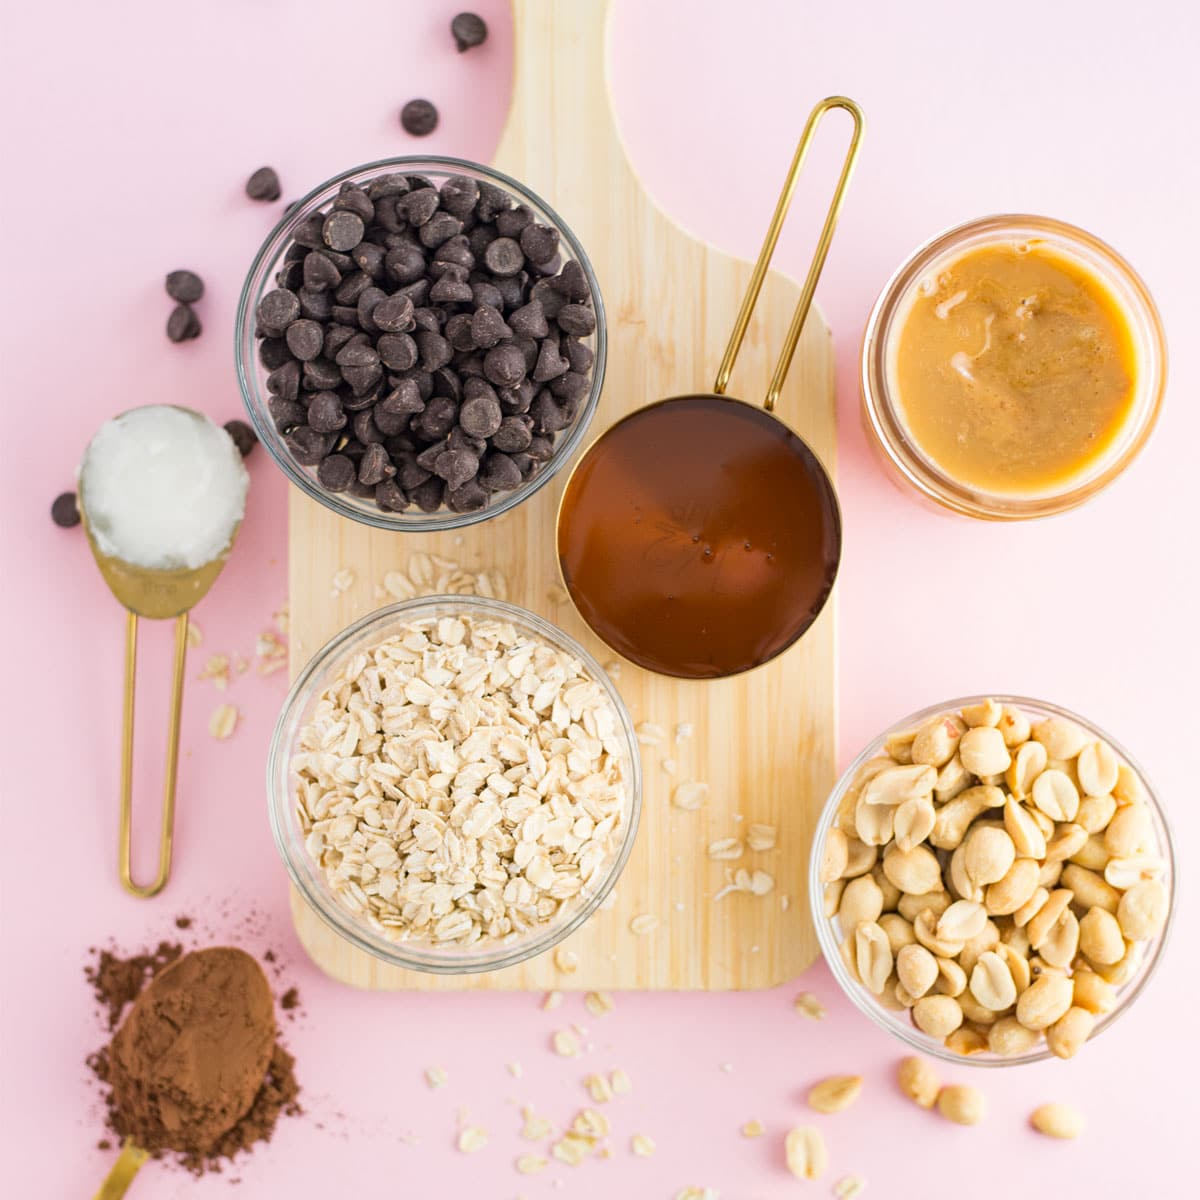 ingredients for homemade granola on pink background